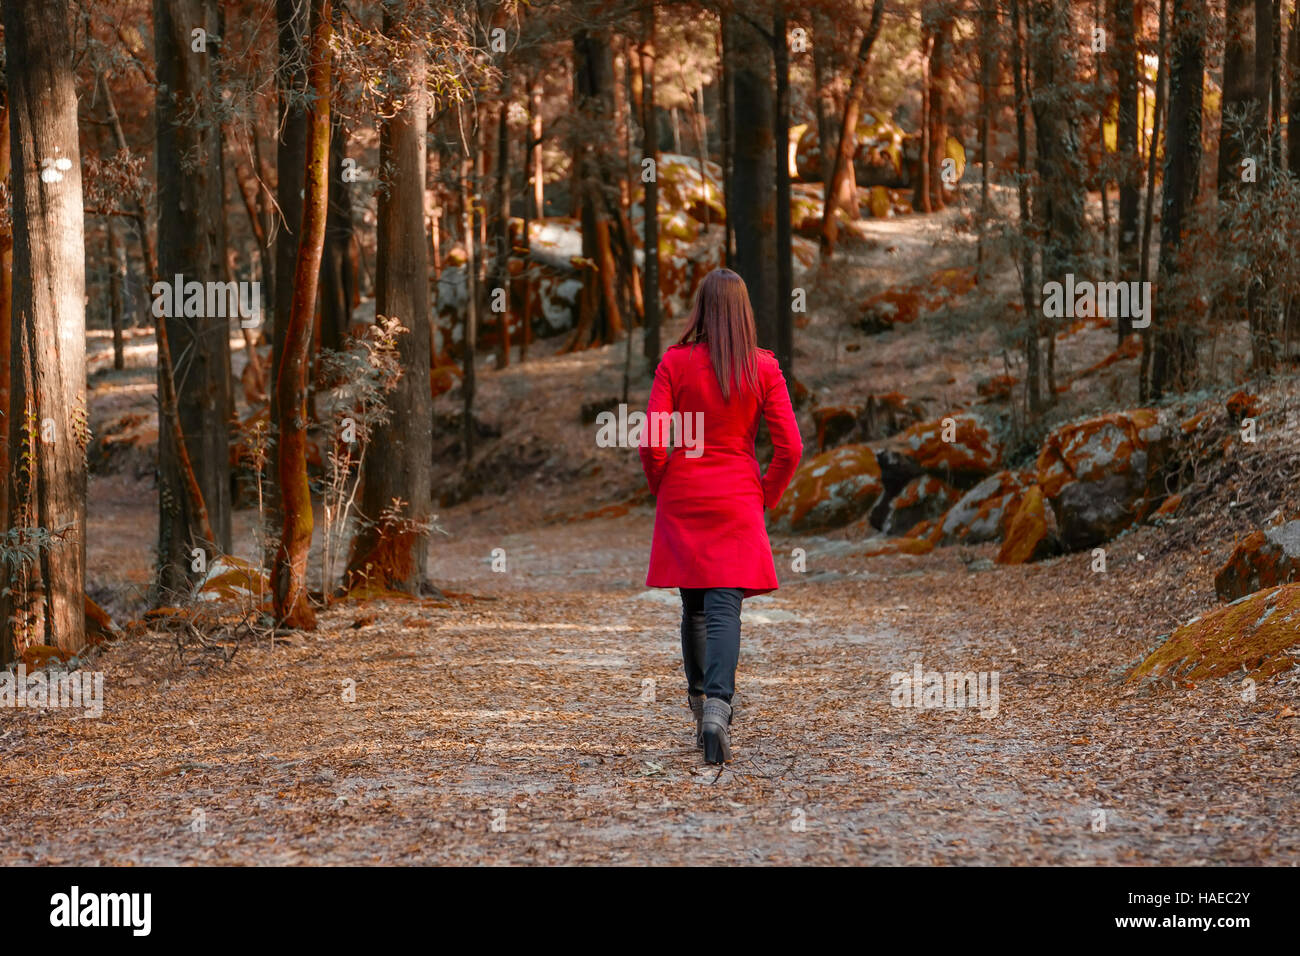 Young woman walking away alone on a forest path wearing a red overcoat - Stock Image